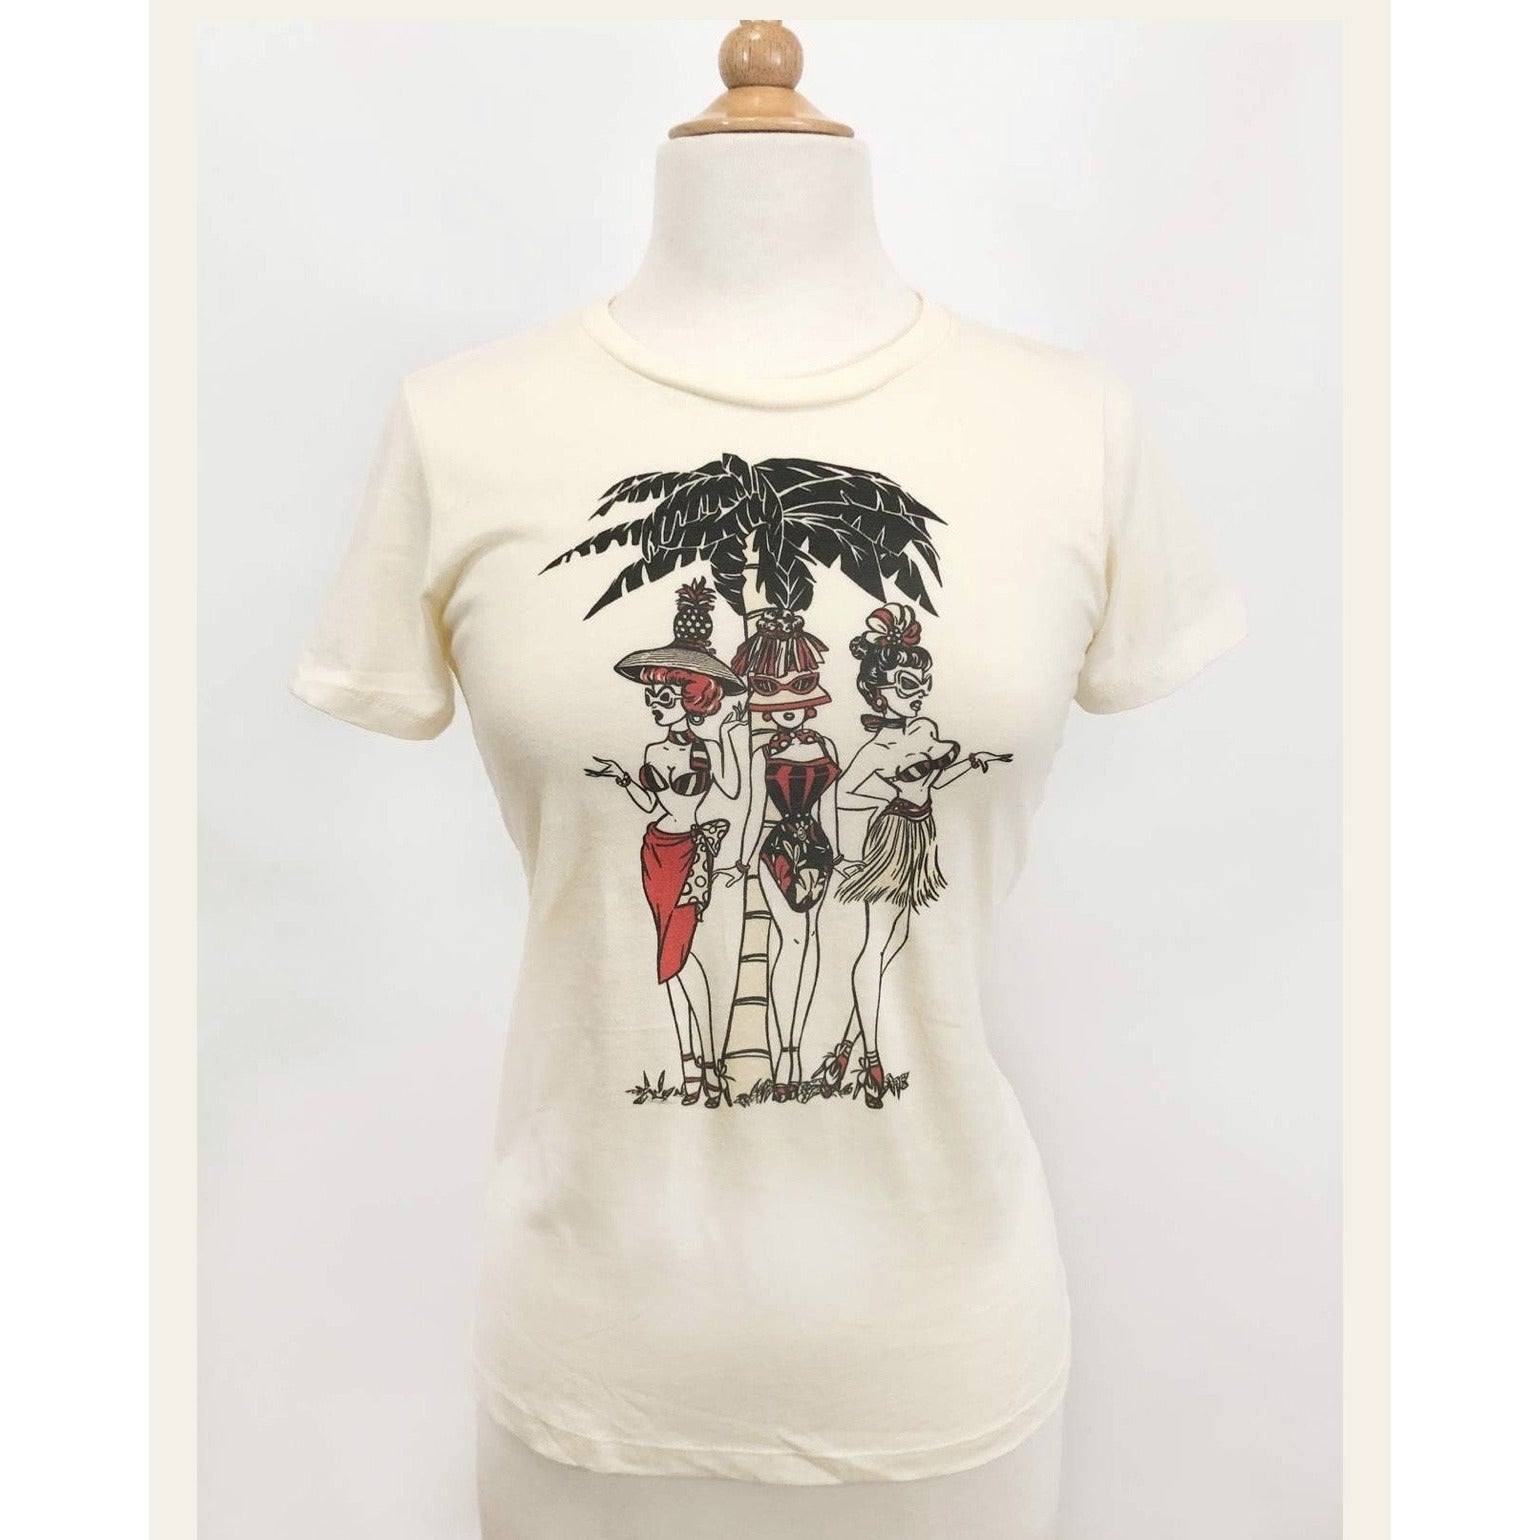 TROPICAL HEAT WAVE T-SHIRT IN IVORY BY NATHALIE RATTNER